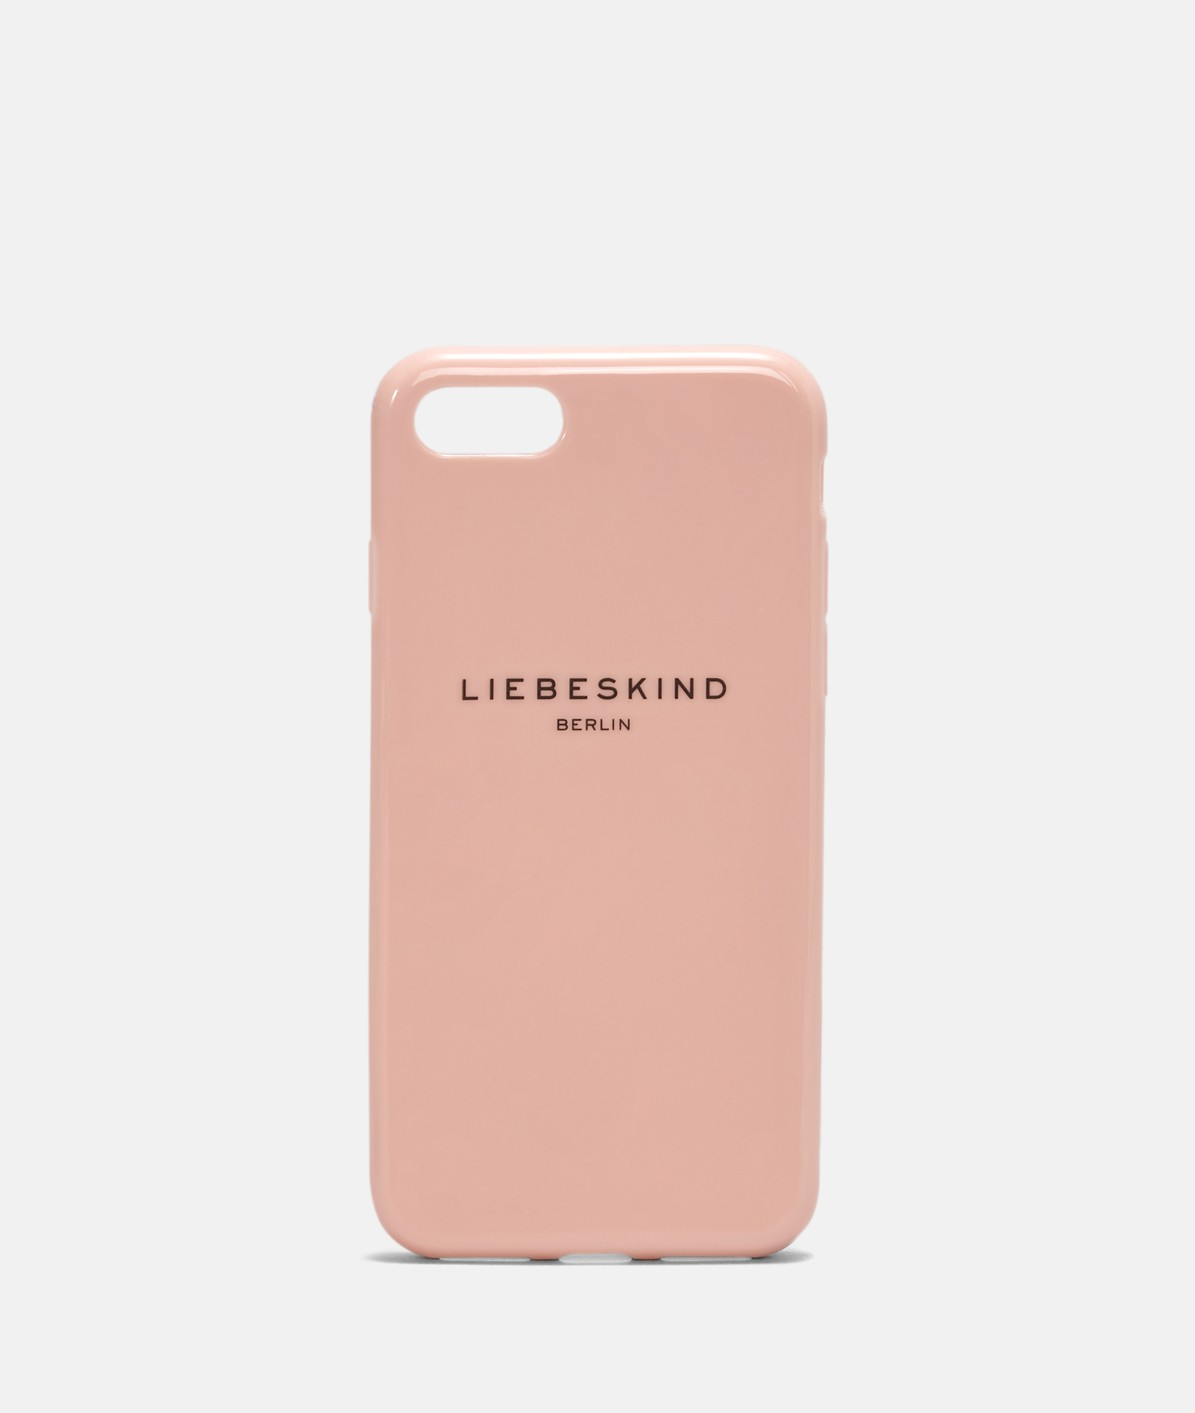 Flexible mobile phone case from liebeskind